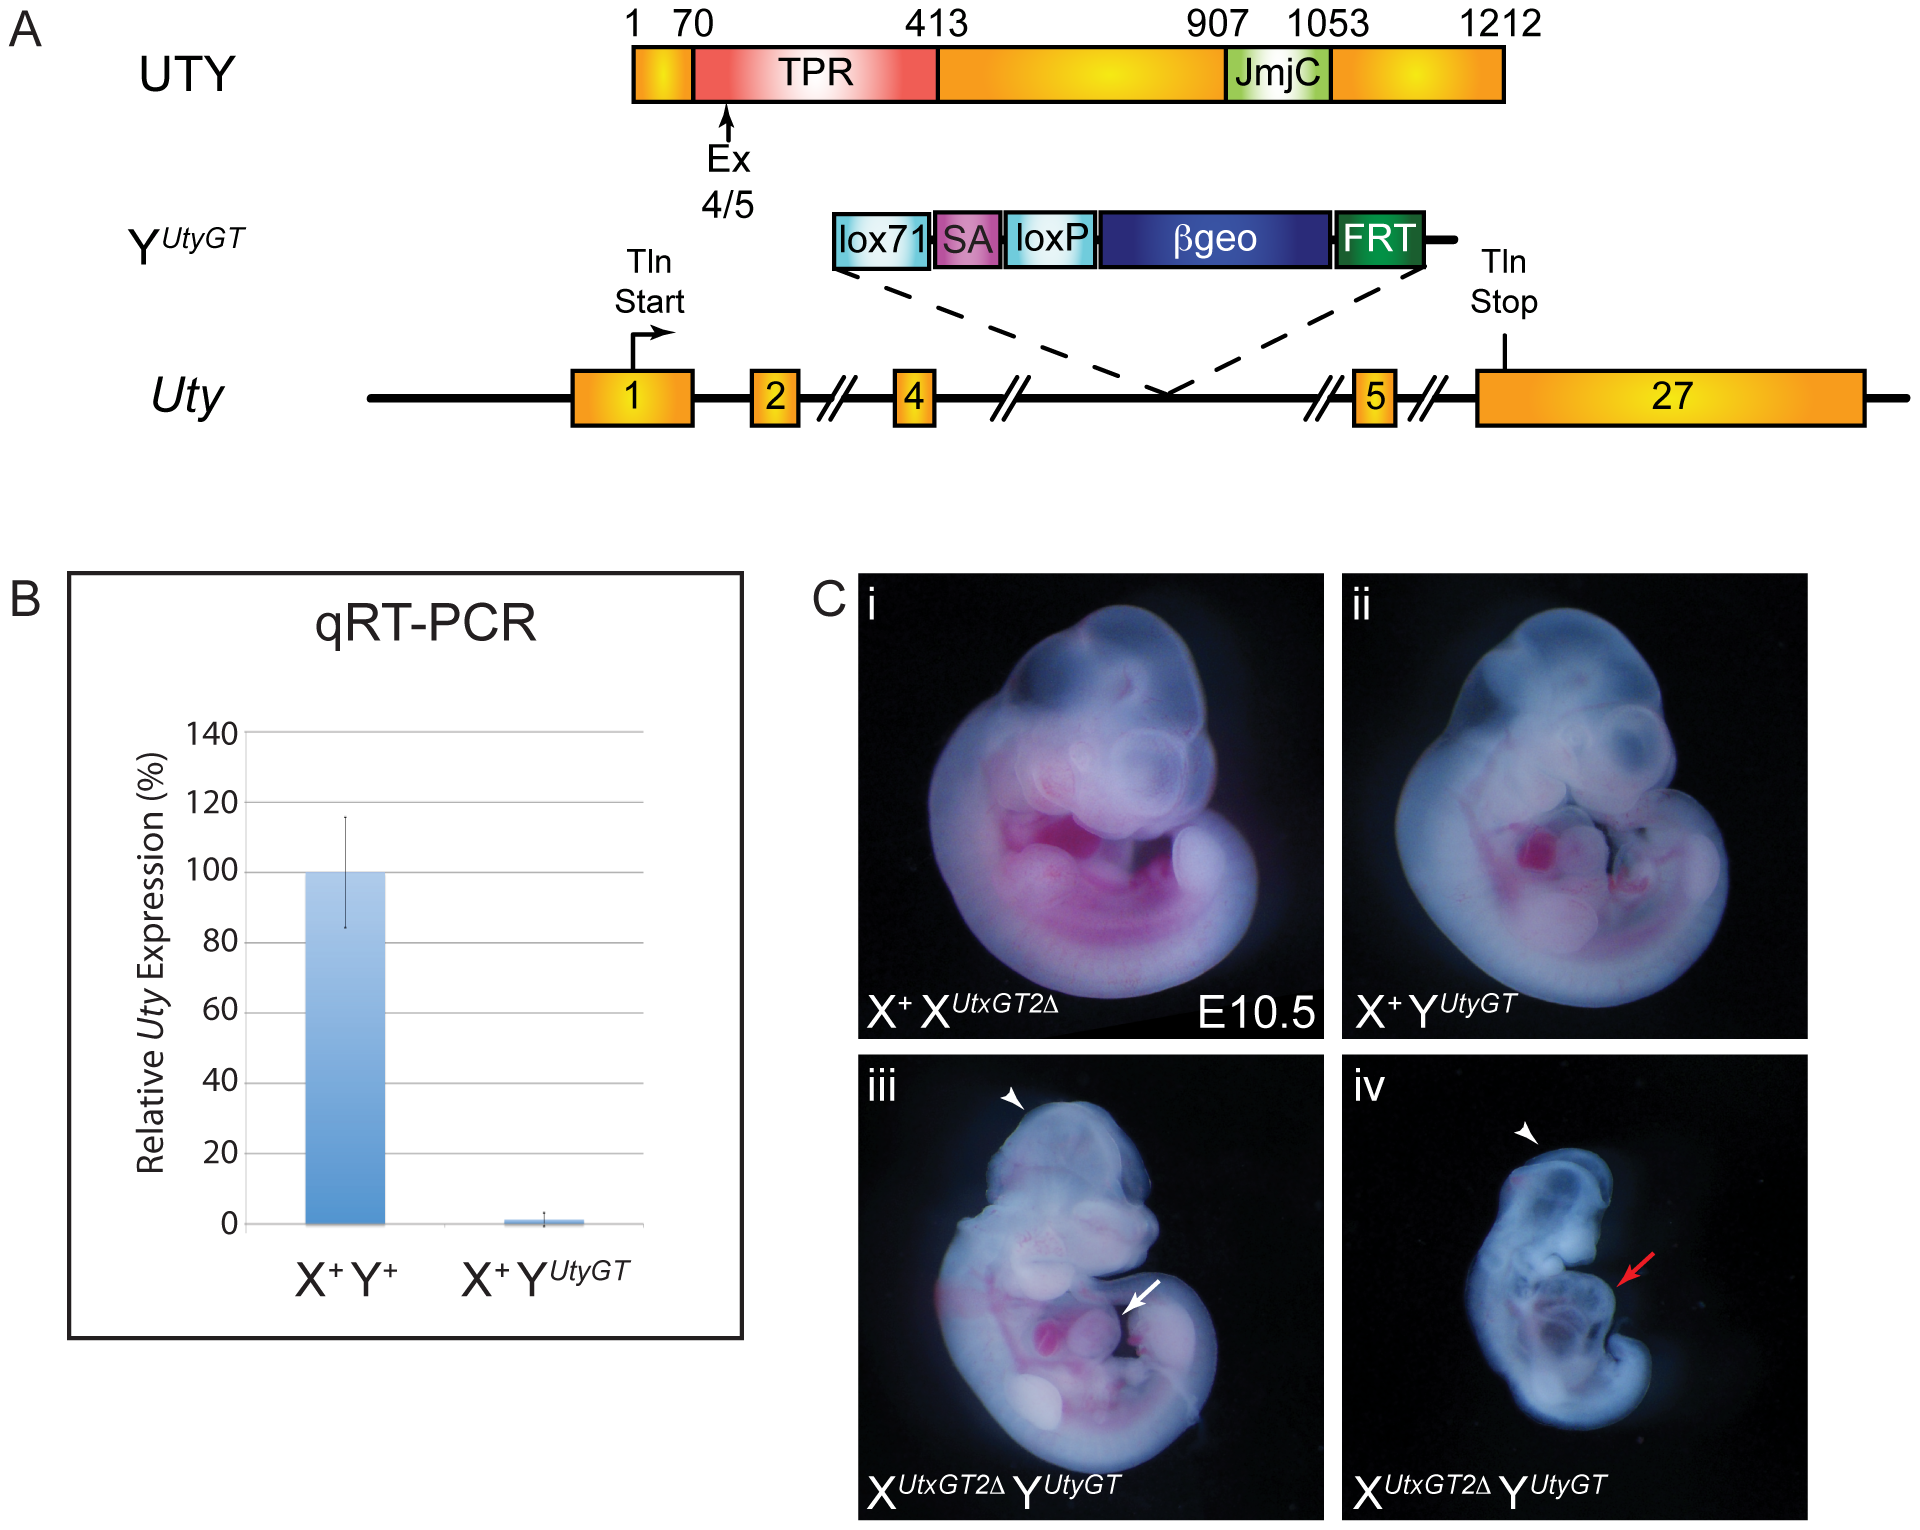 UTX and UTY have essential, redundant functions in embryonic development.